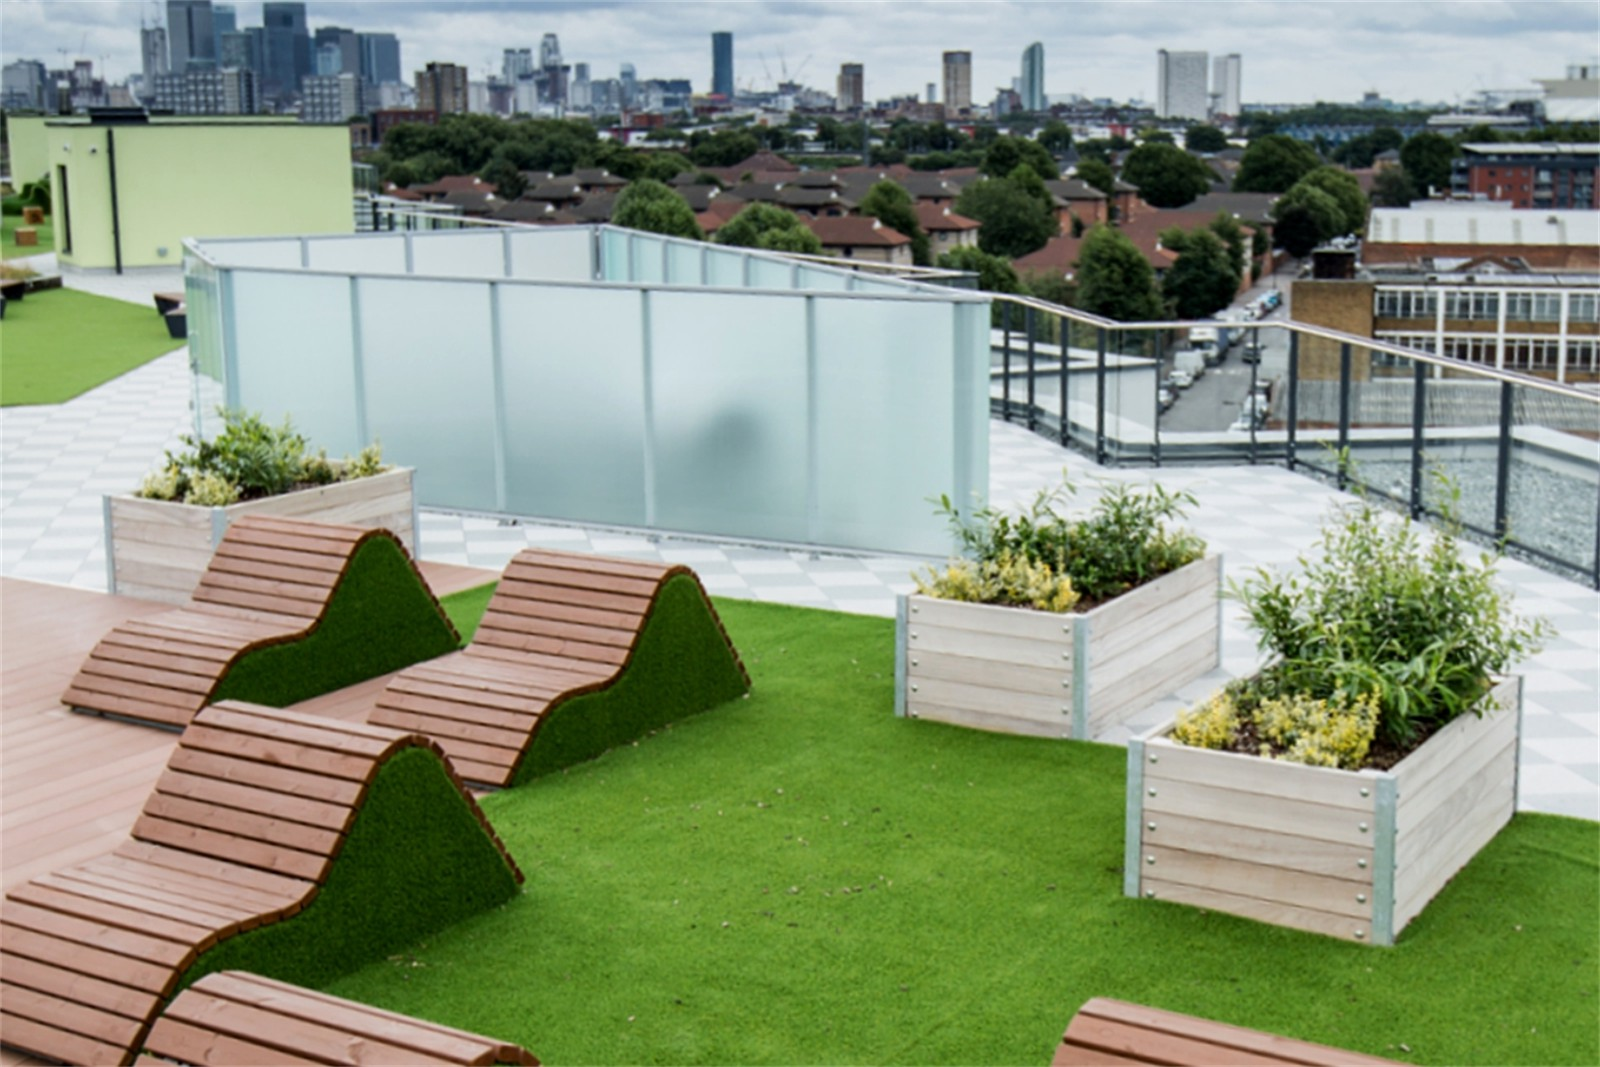 20pmw54 - Mews roof garden planters